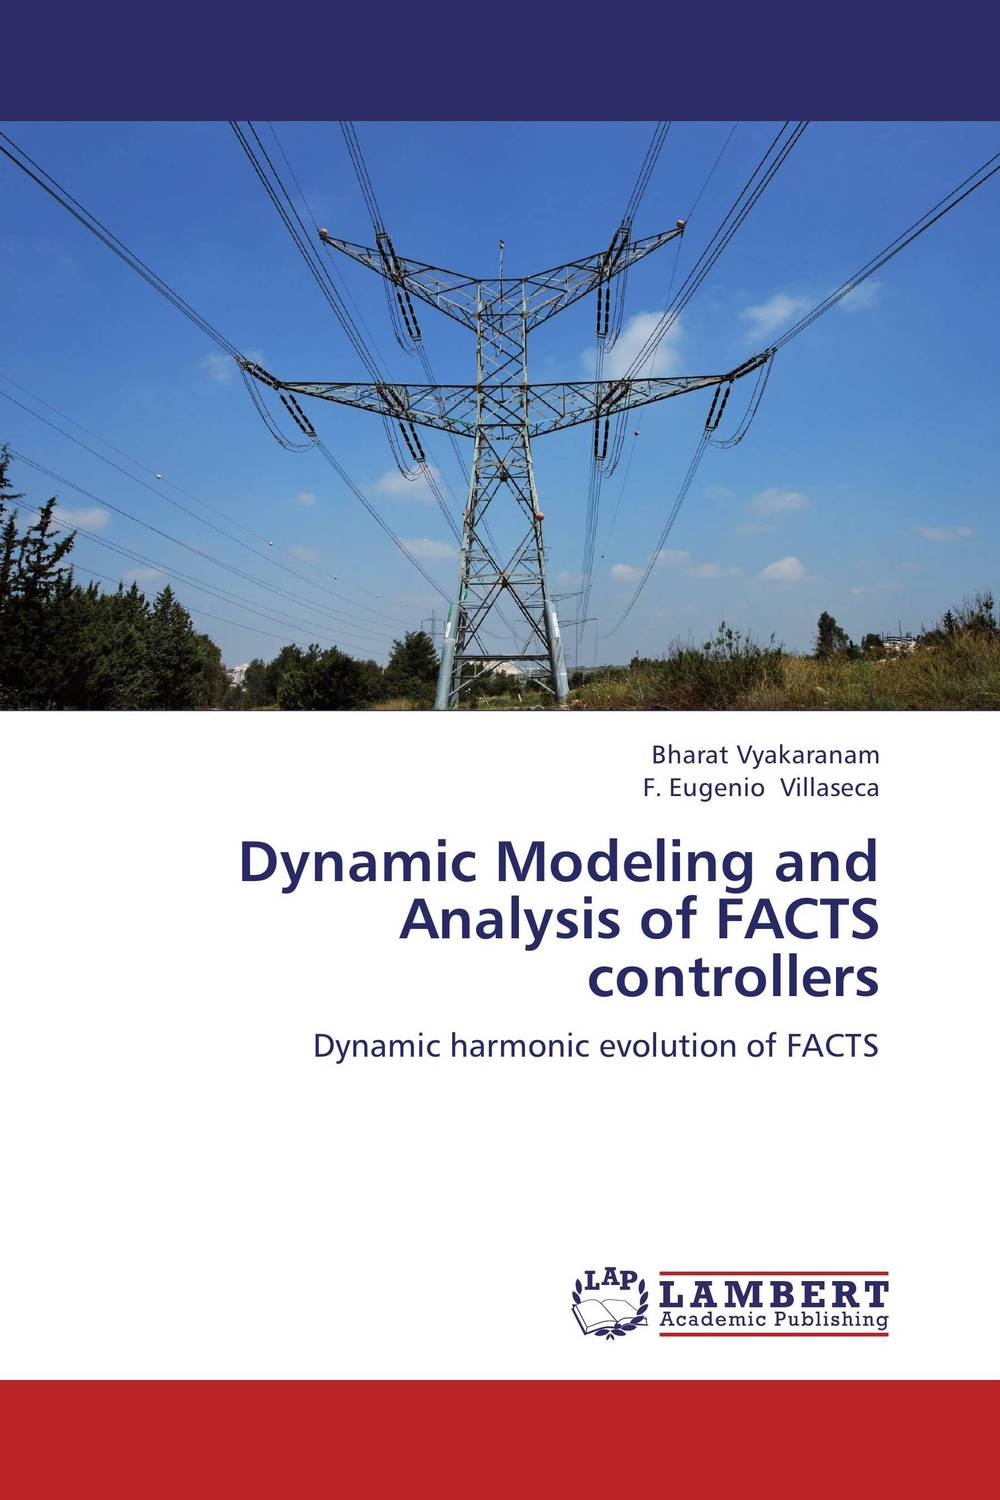 Dynamic Modeling and Analysis of FACTS controllers